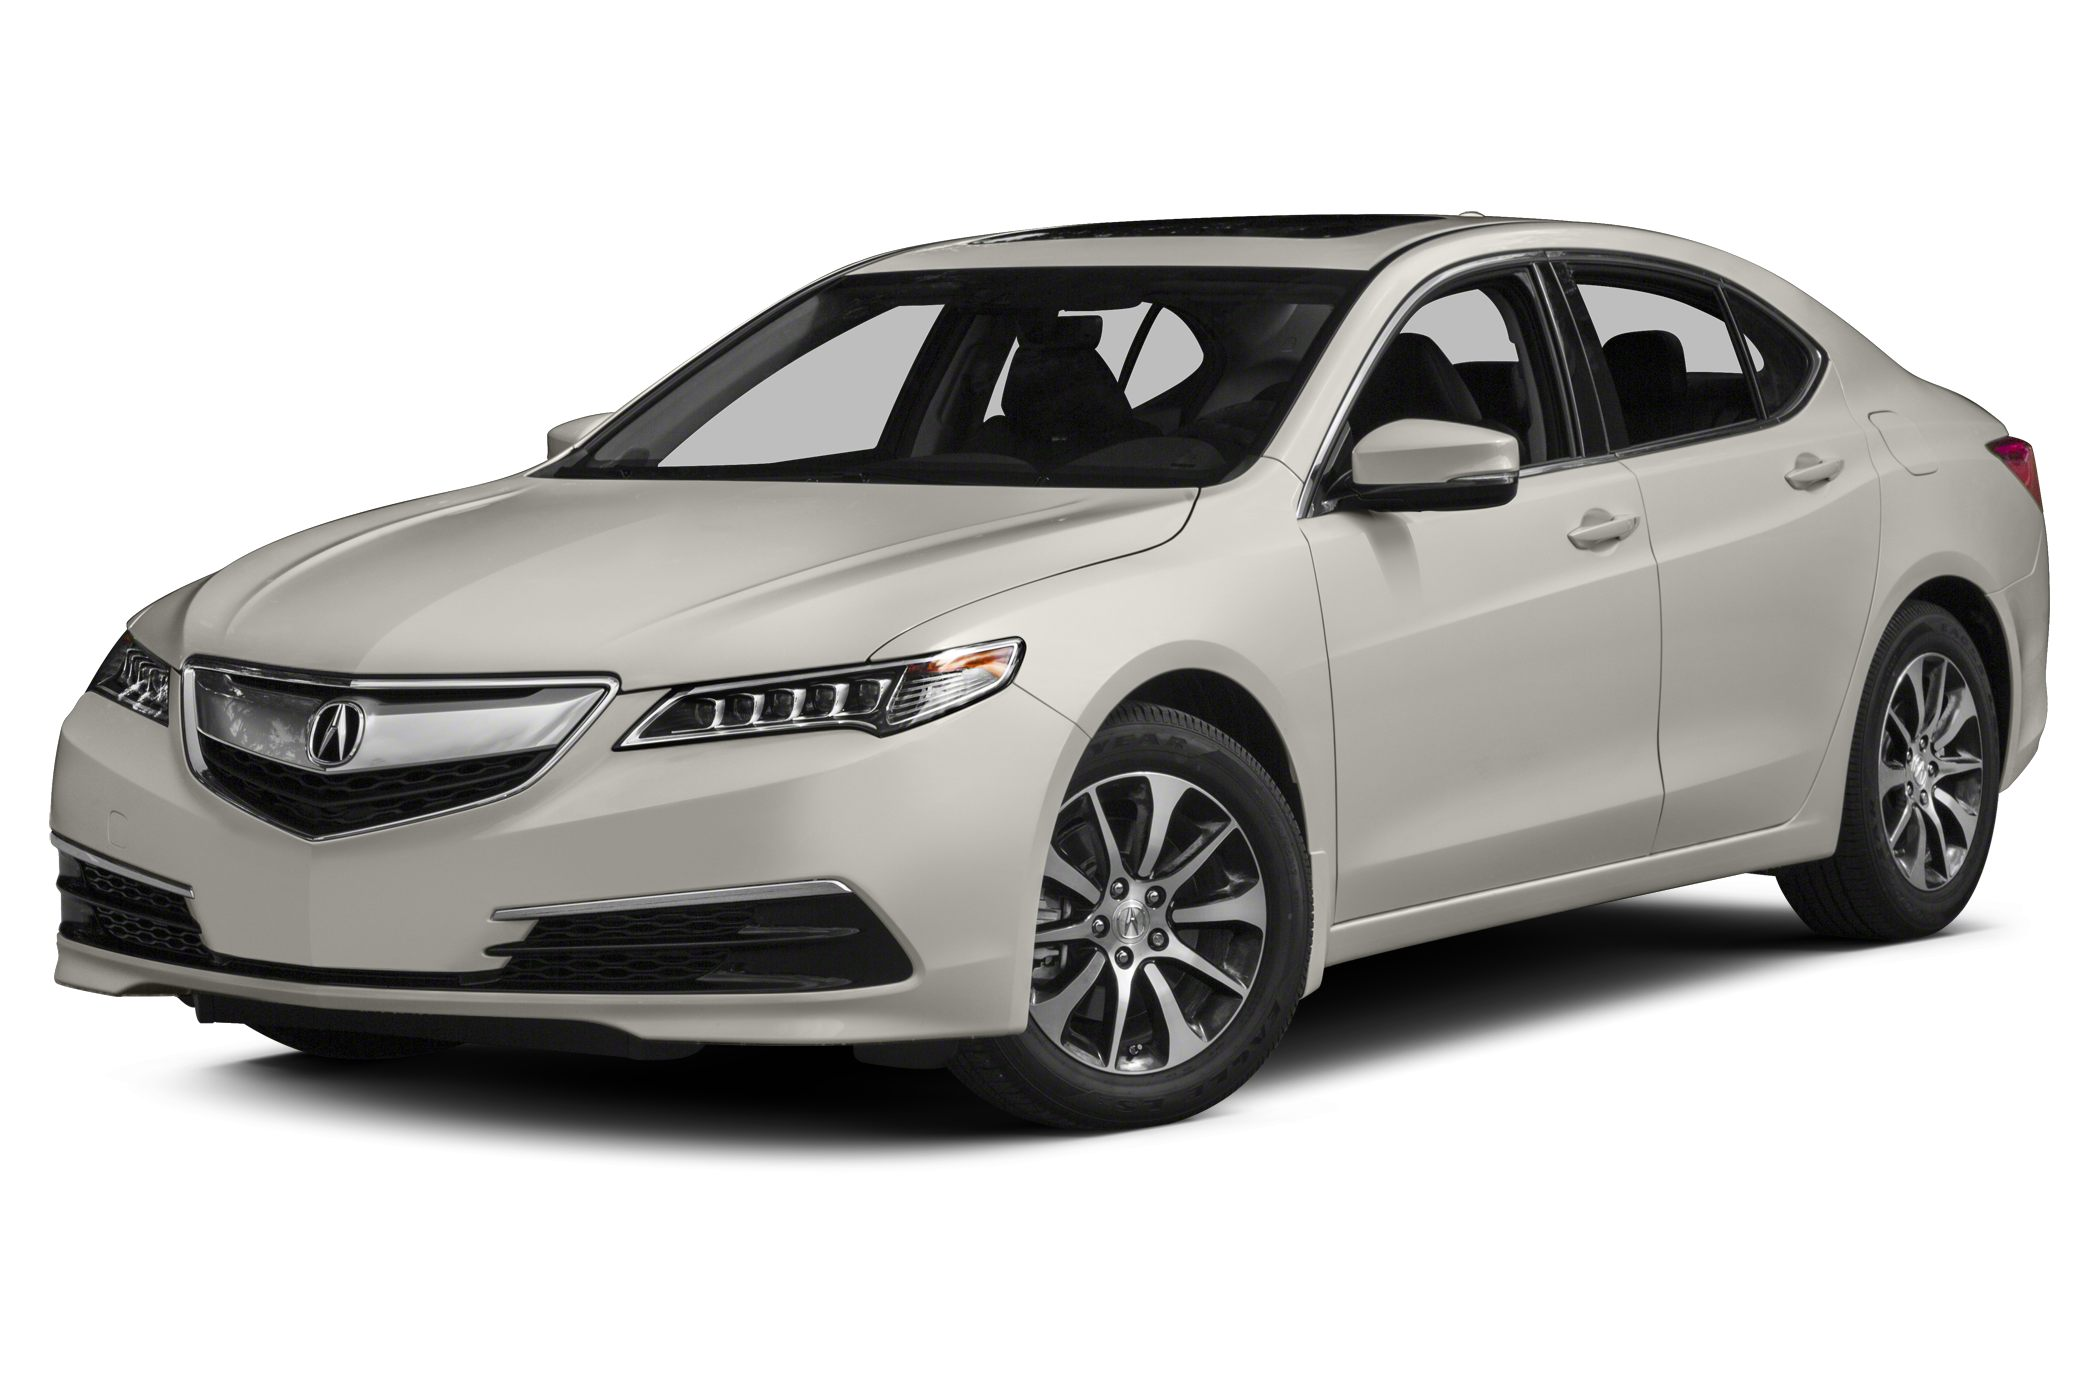 2015 Acura TLX Tech Sedan for sale in Columbus for $36,420 with 4 miles.